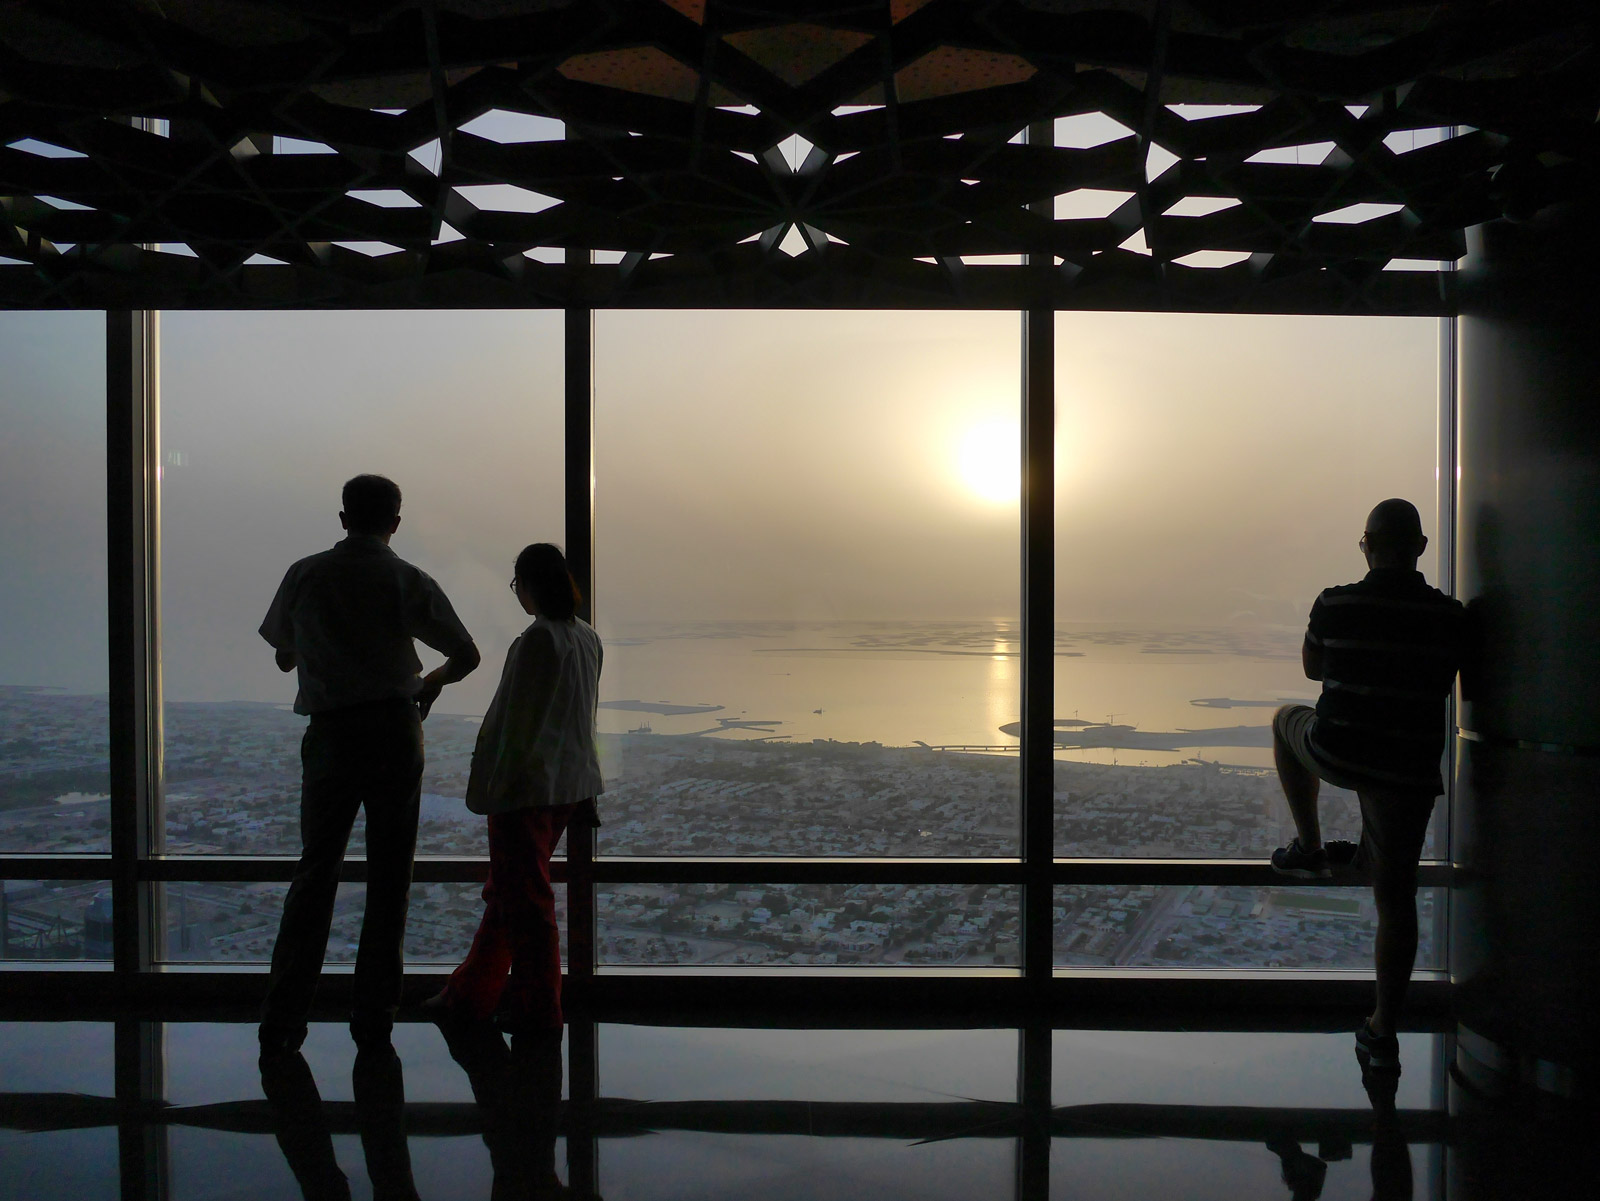 Silhouettes Marvelling at the Arabian Sunset - Dubai, United Arab Emirates